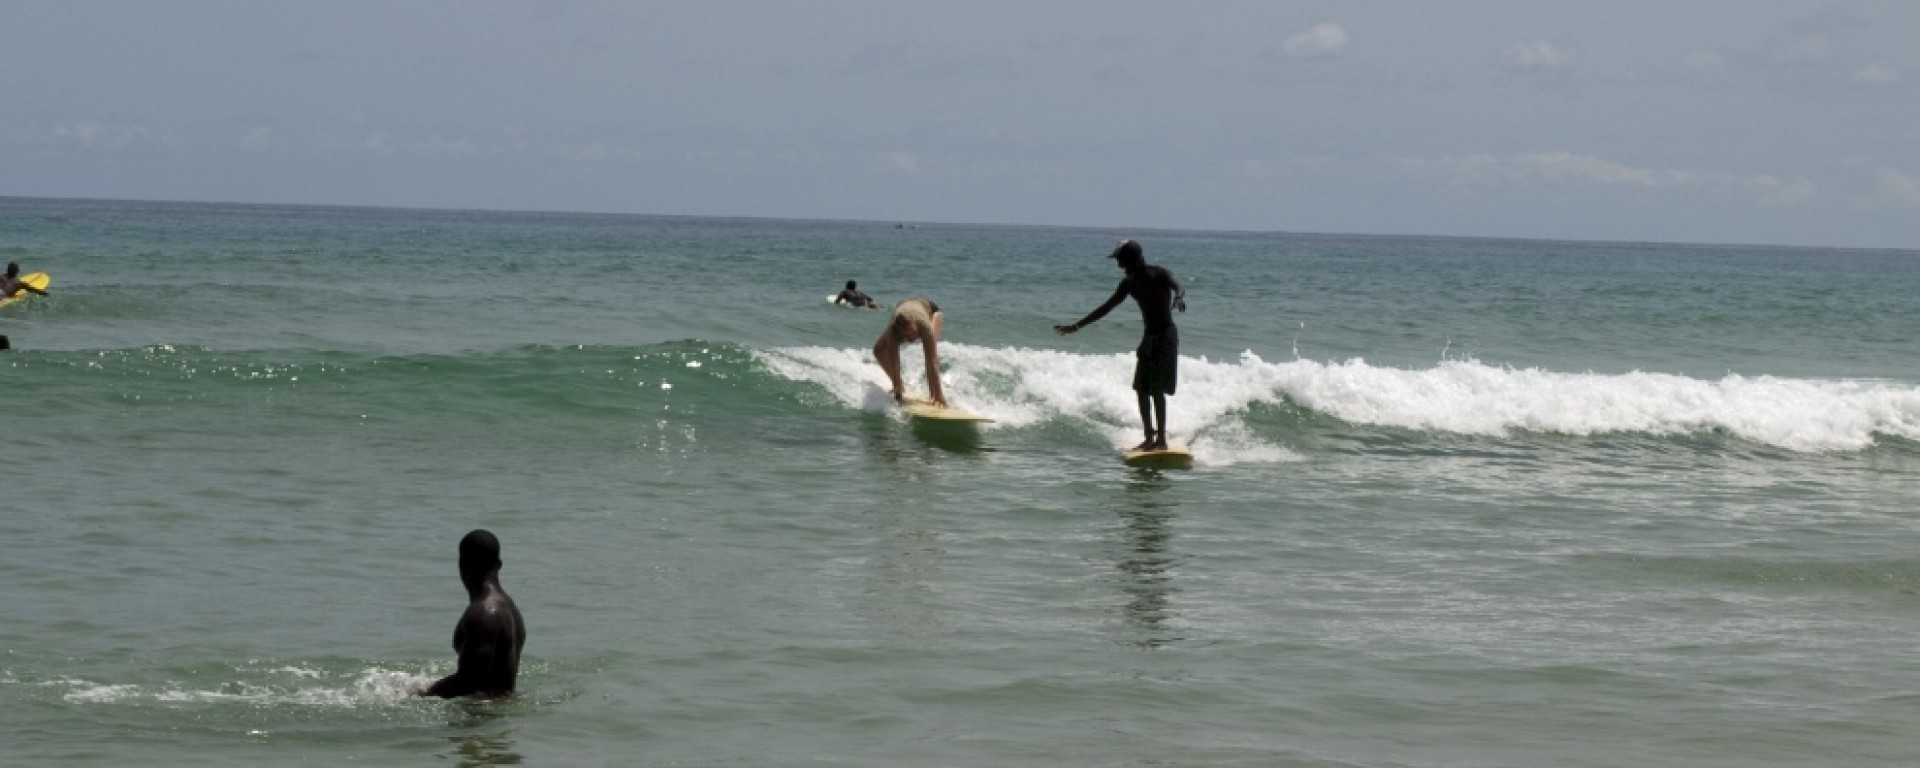 N Gor Island Surfcamp's photo of Yoff Beach